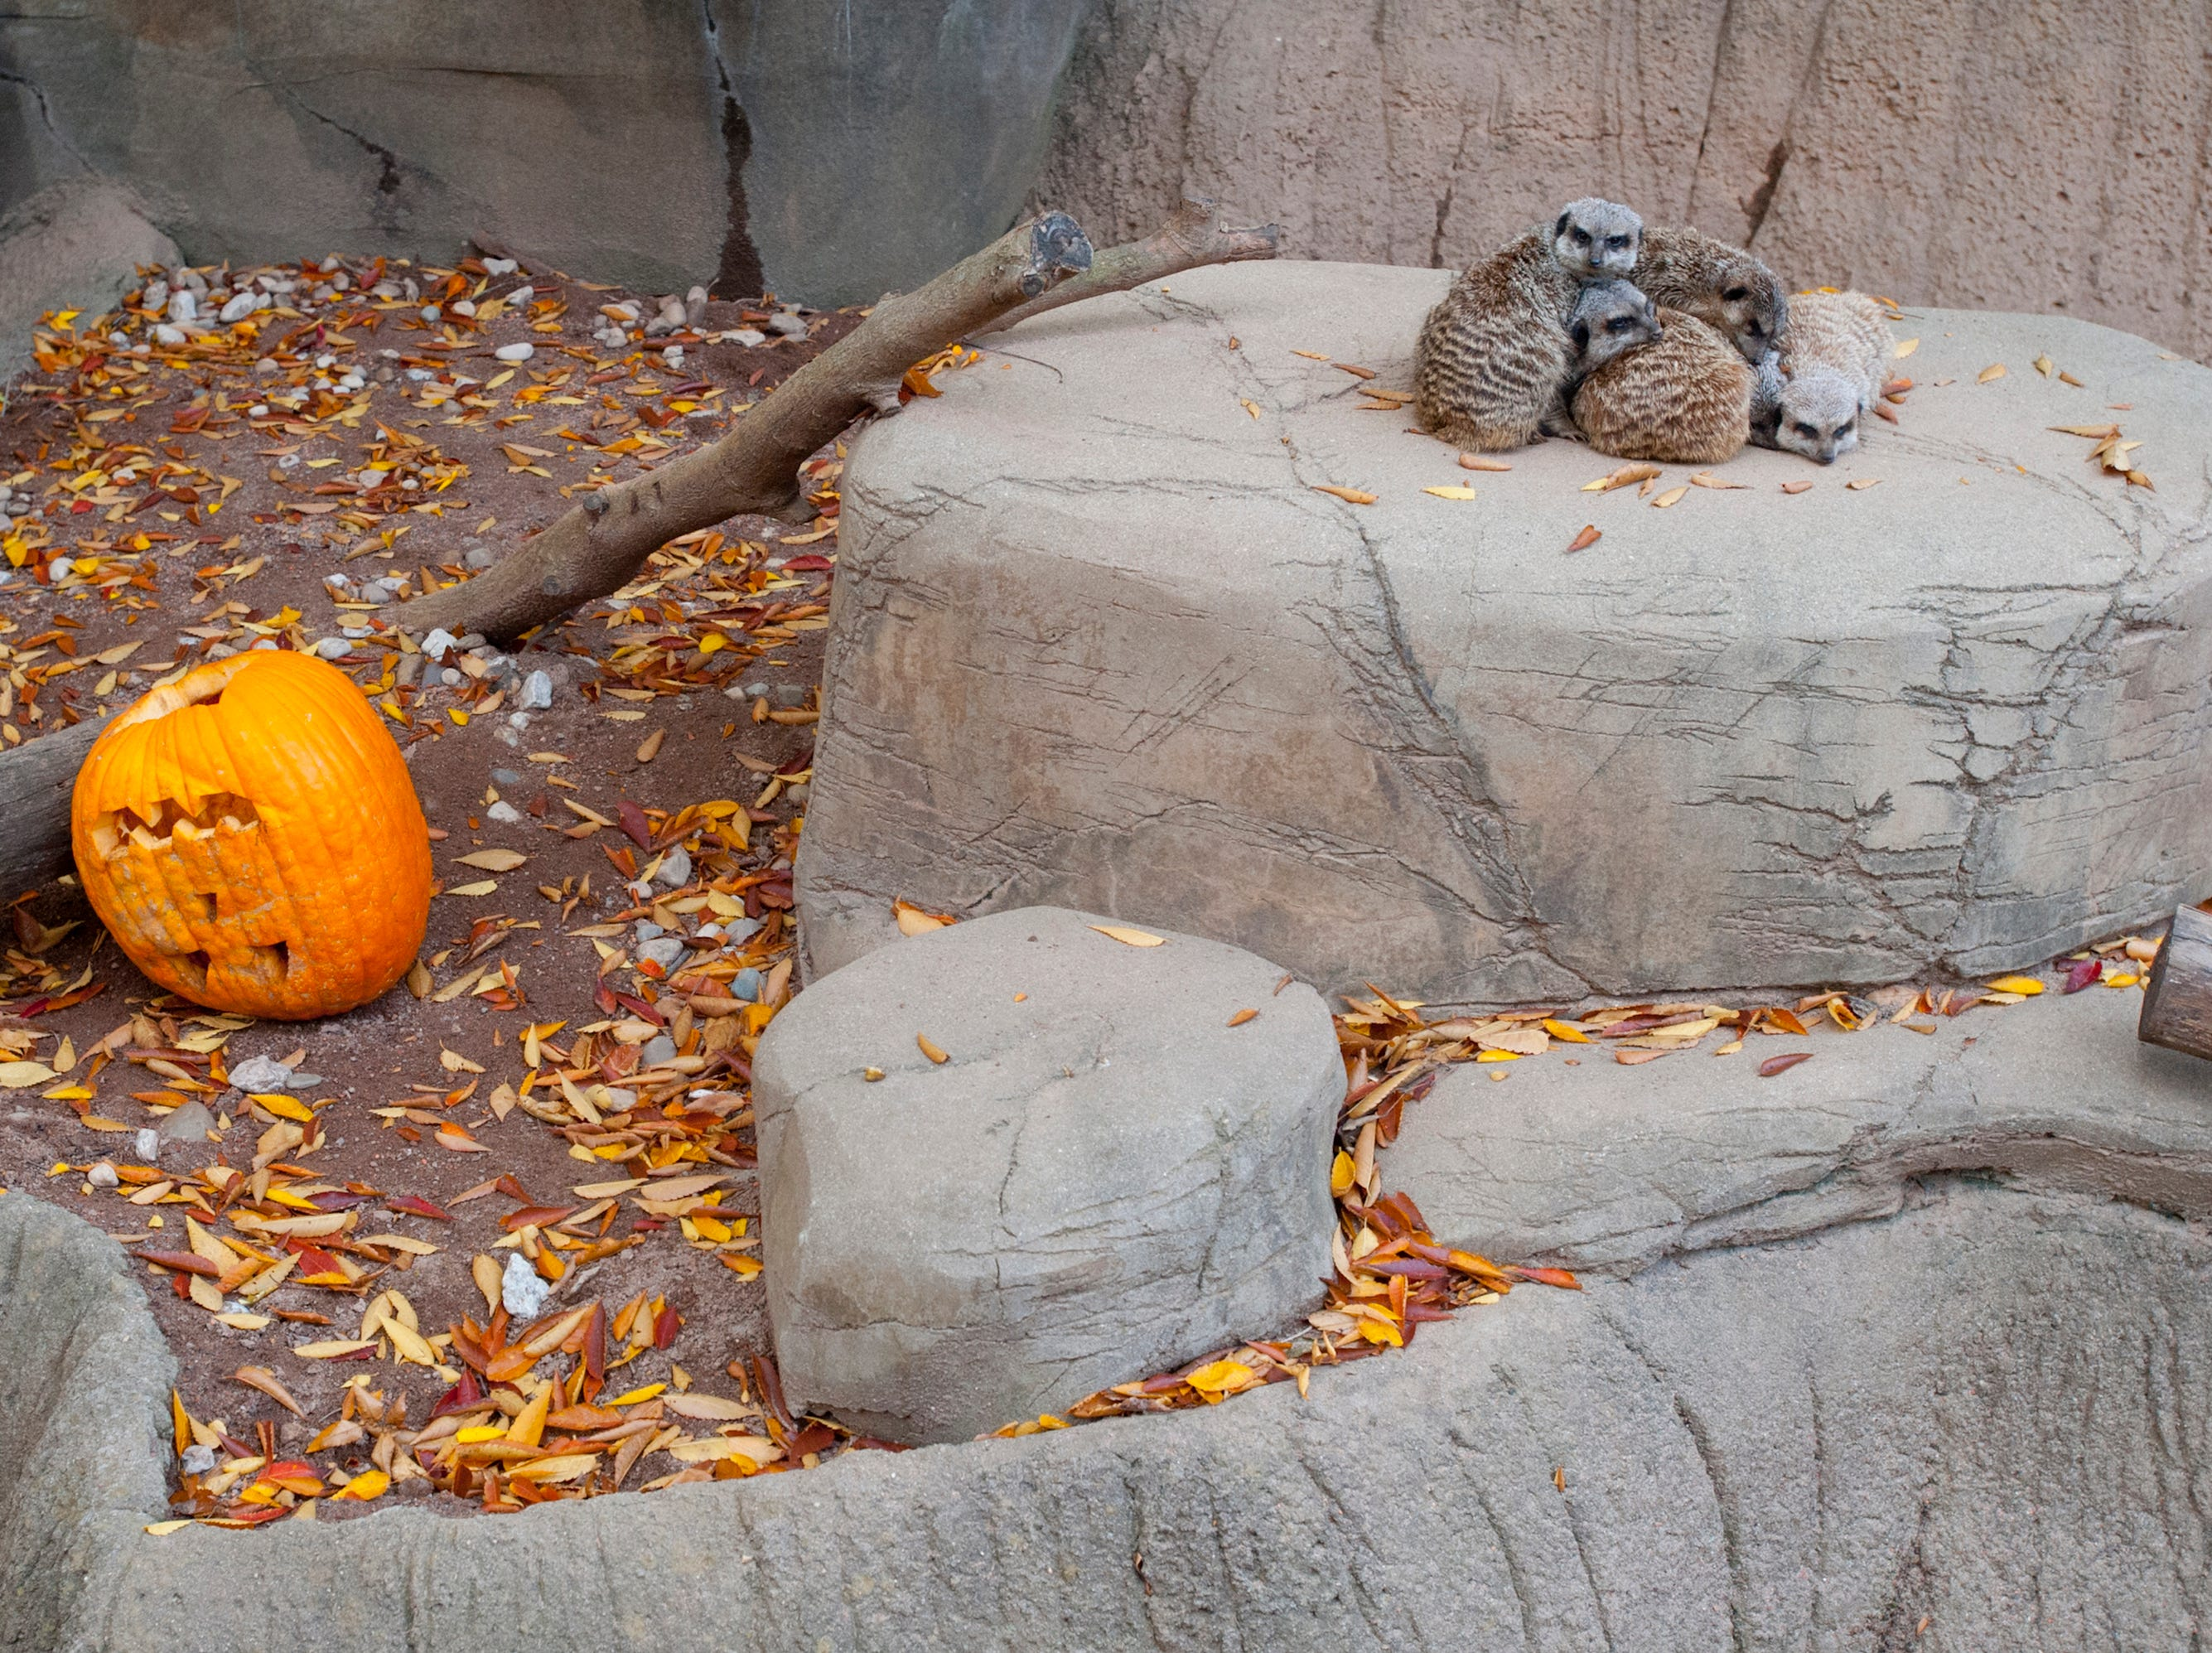 Meerkats were less interested in a pumpkin than they were staying warm in the cool weather at the Louisville Zoo's annual pumpkin smash. The pumpkins being fed to the animals are from the zoo's Halloween event. November 04, 2018